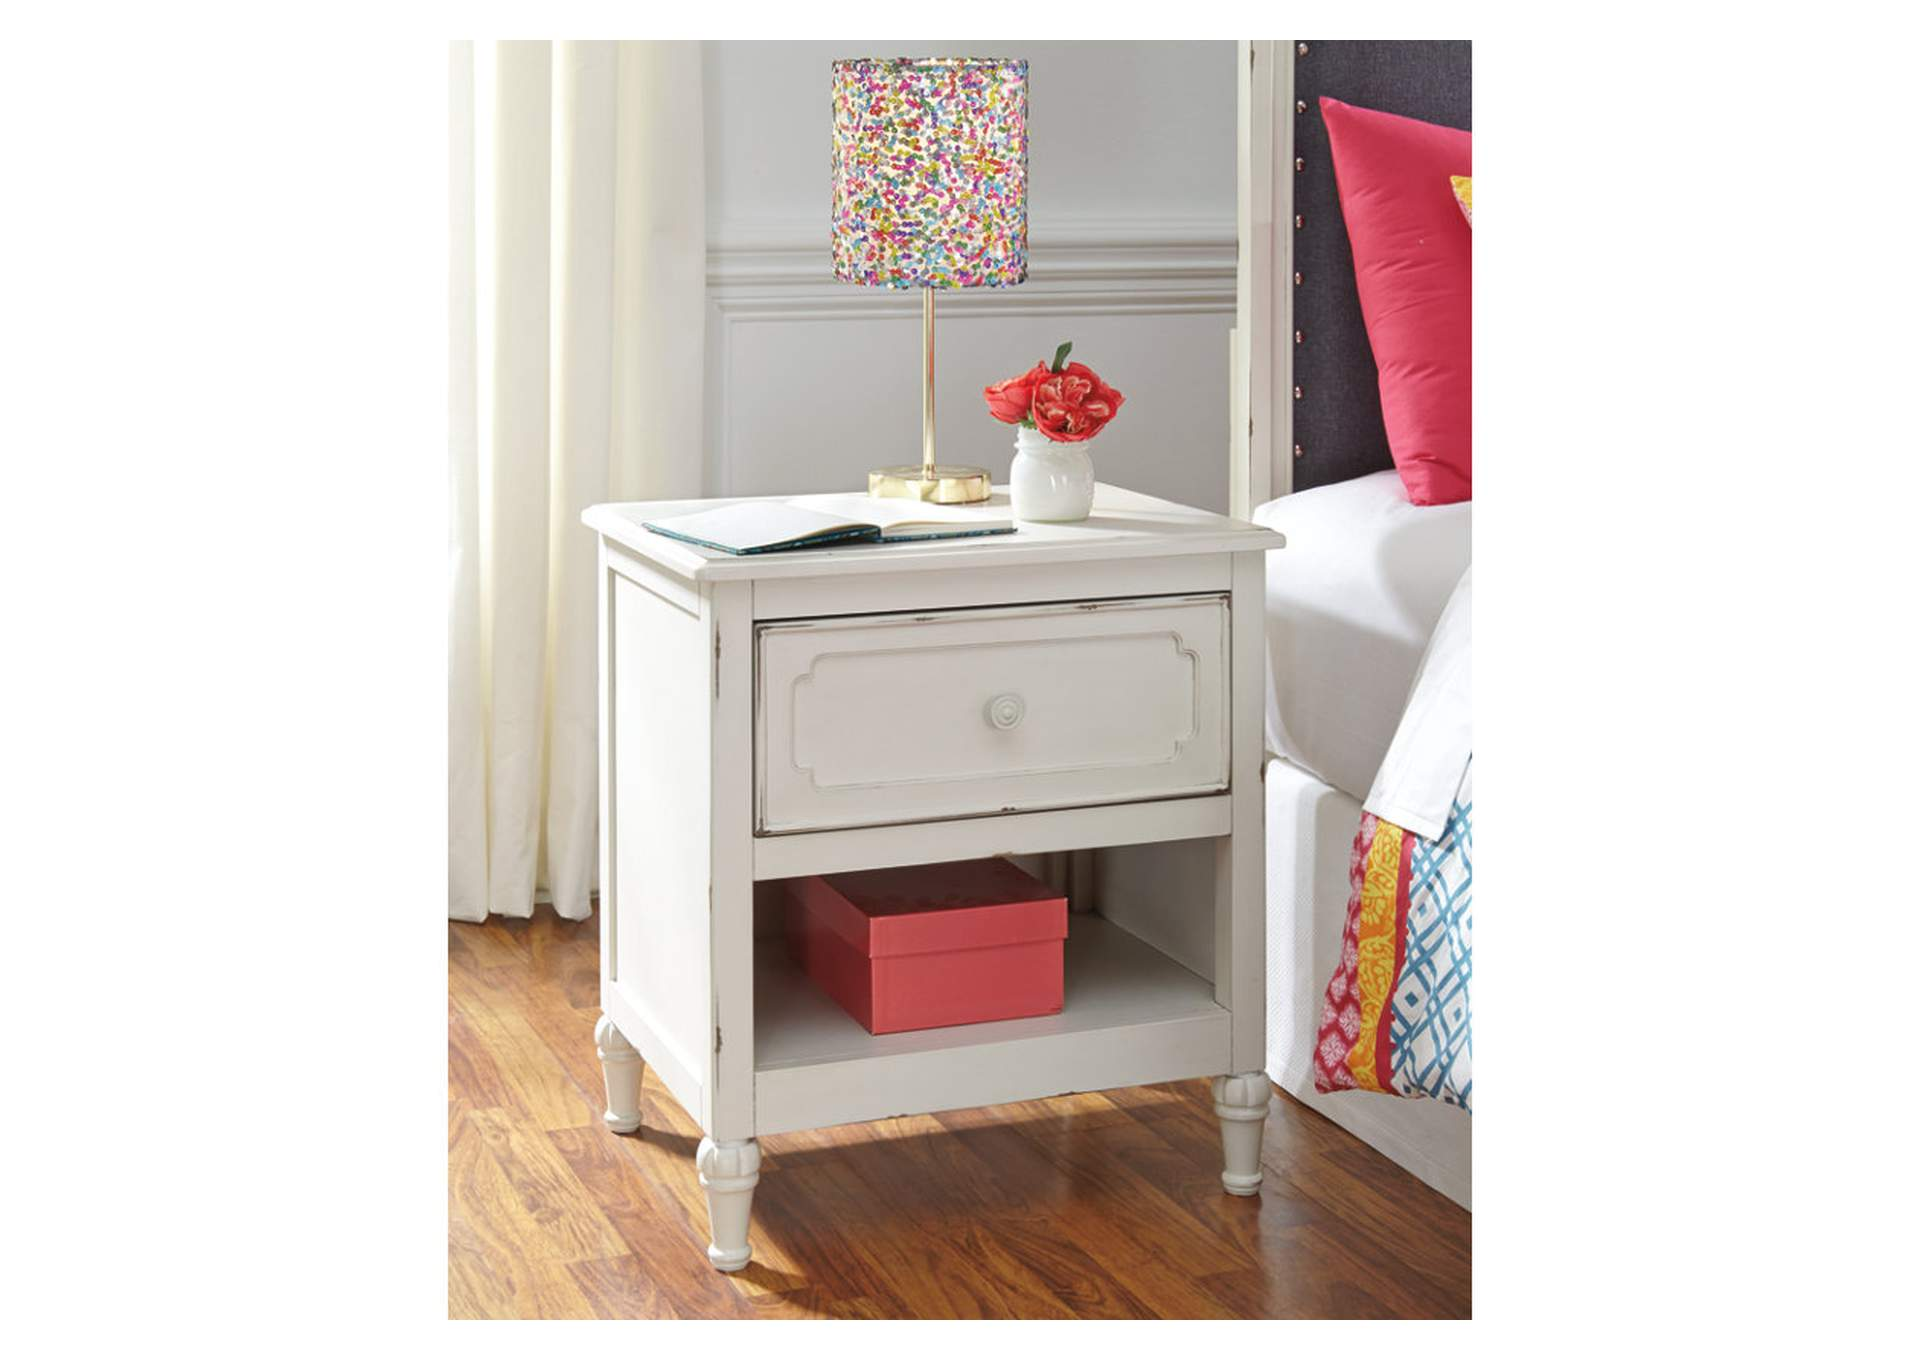 Furniture Exchange Faelene Chipped White One Drawer Night Stand